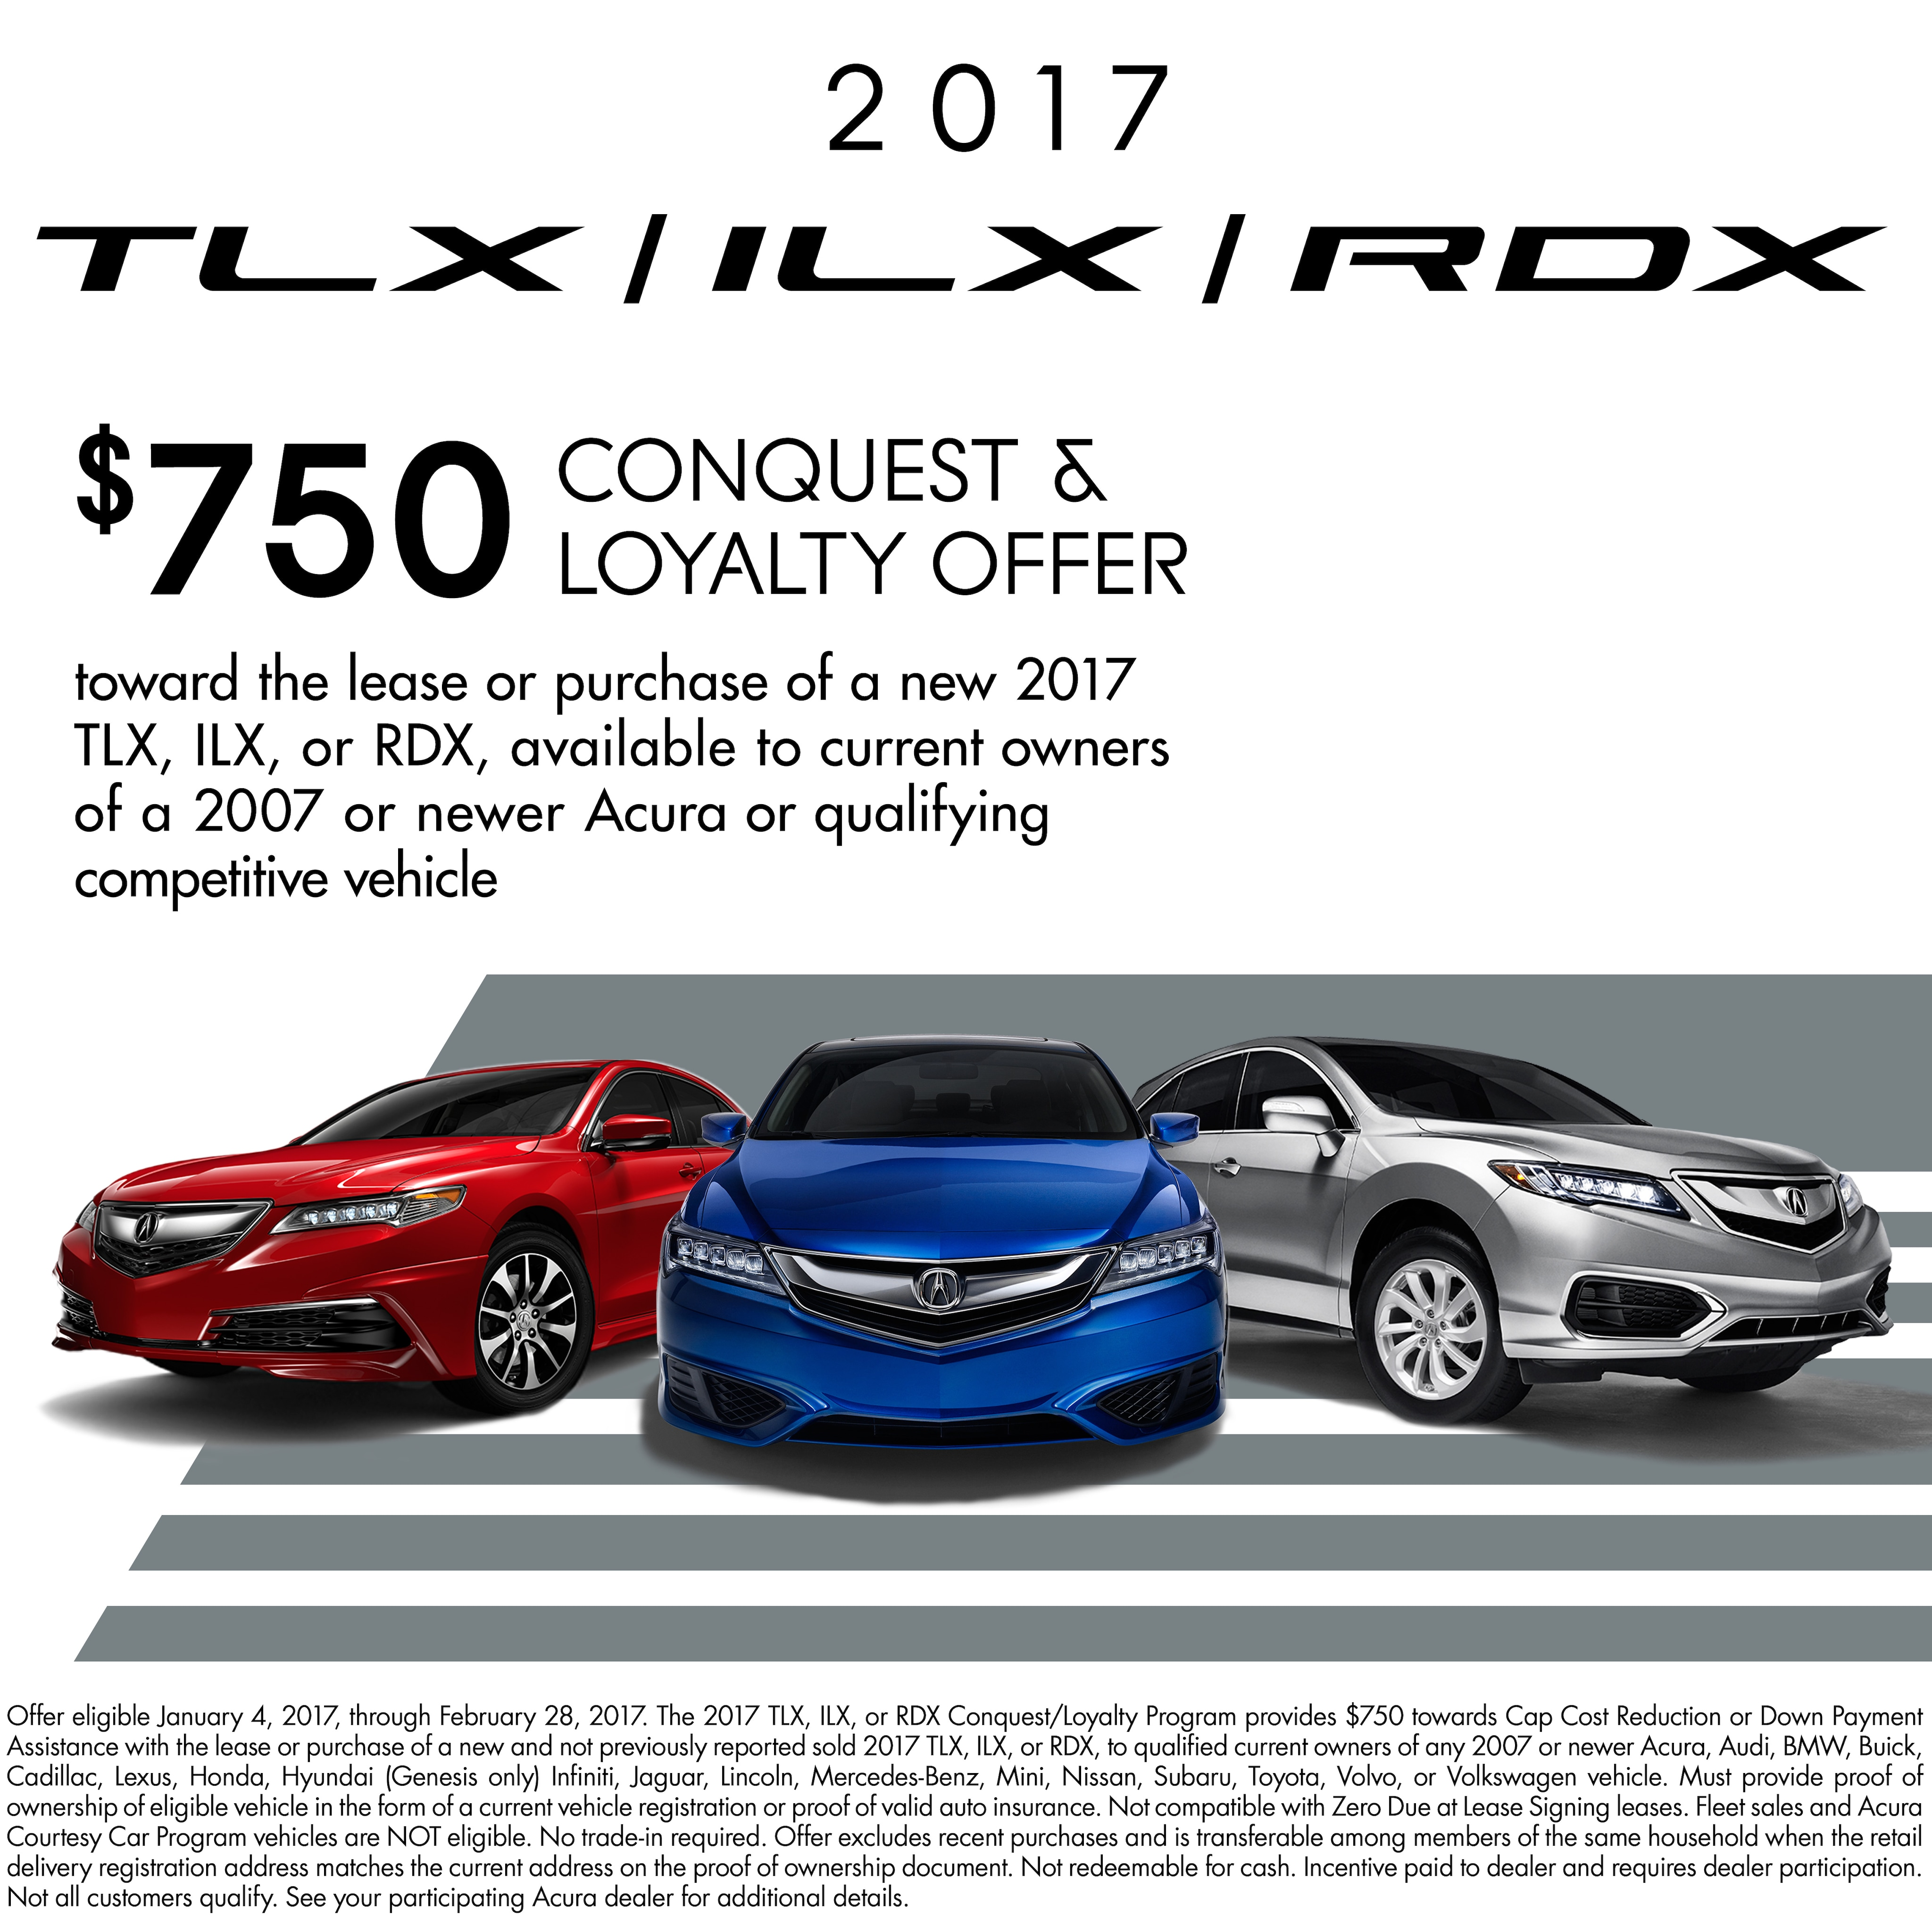 2017 Loyalty And Conquest Programs